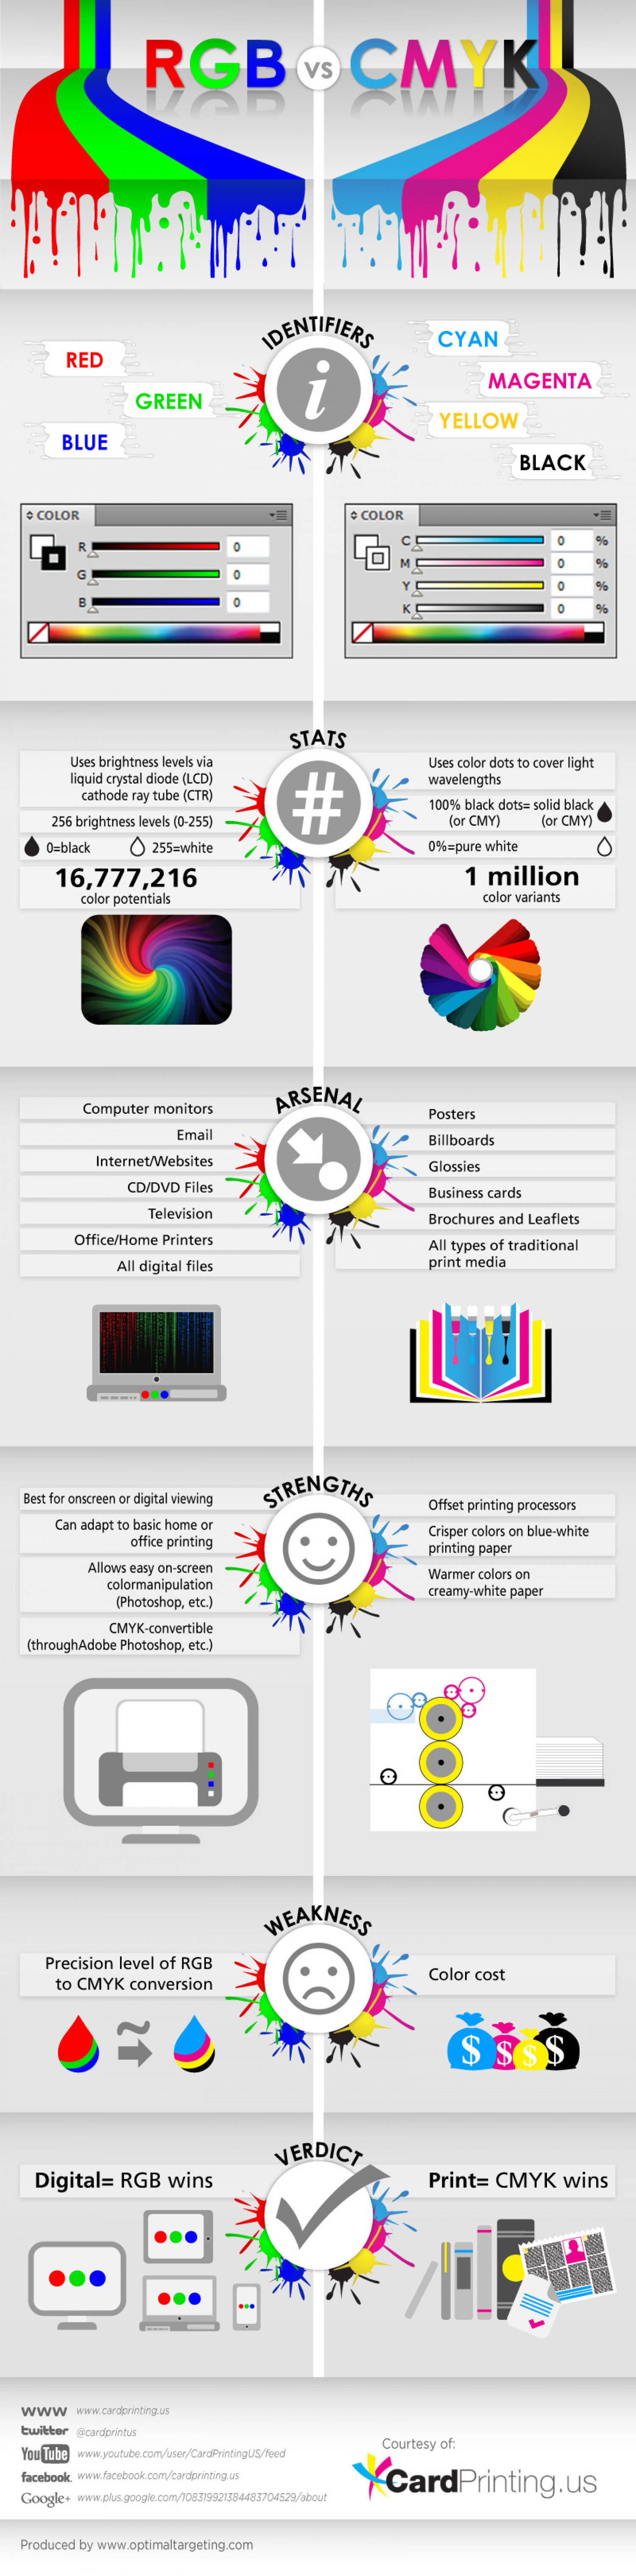 RGB vs CMYK Infographic